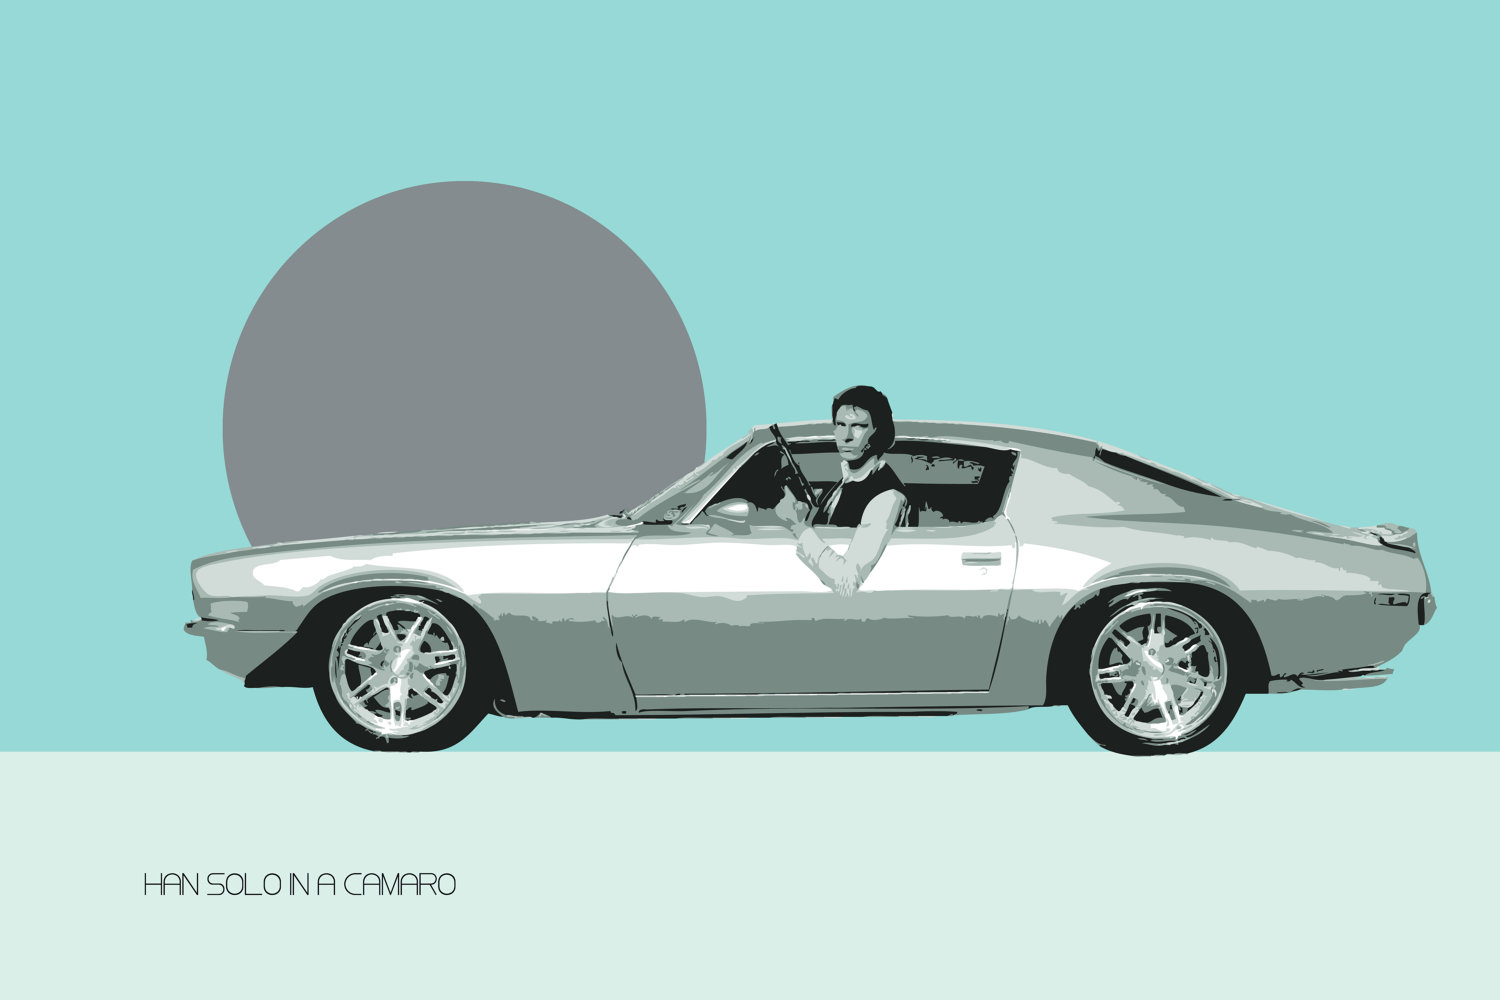 Fashion And Action: Star Wars In Cool Cars